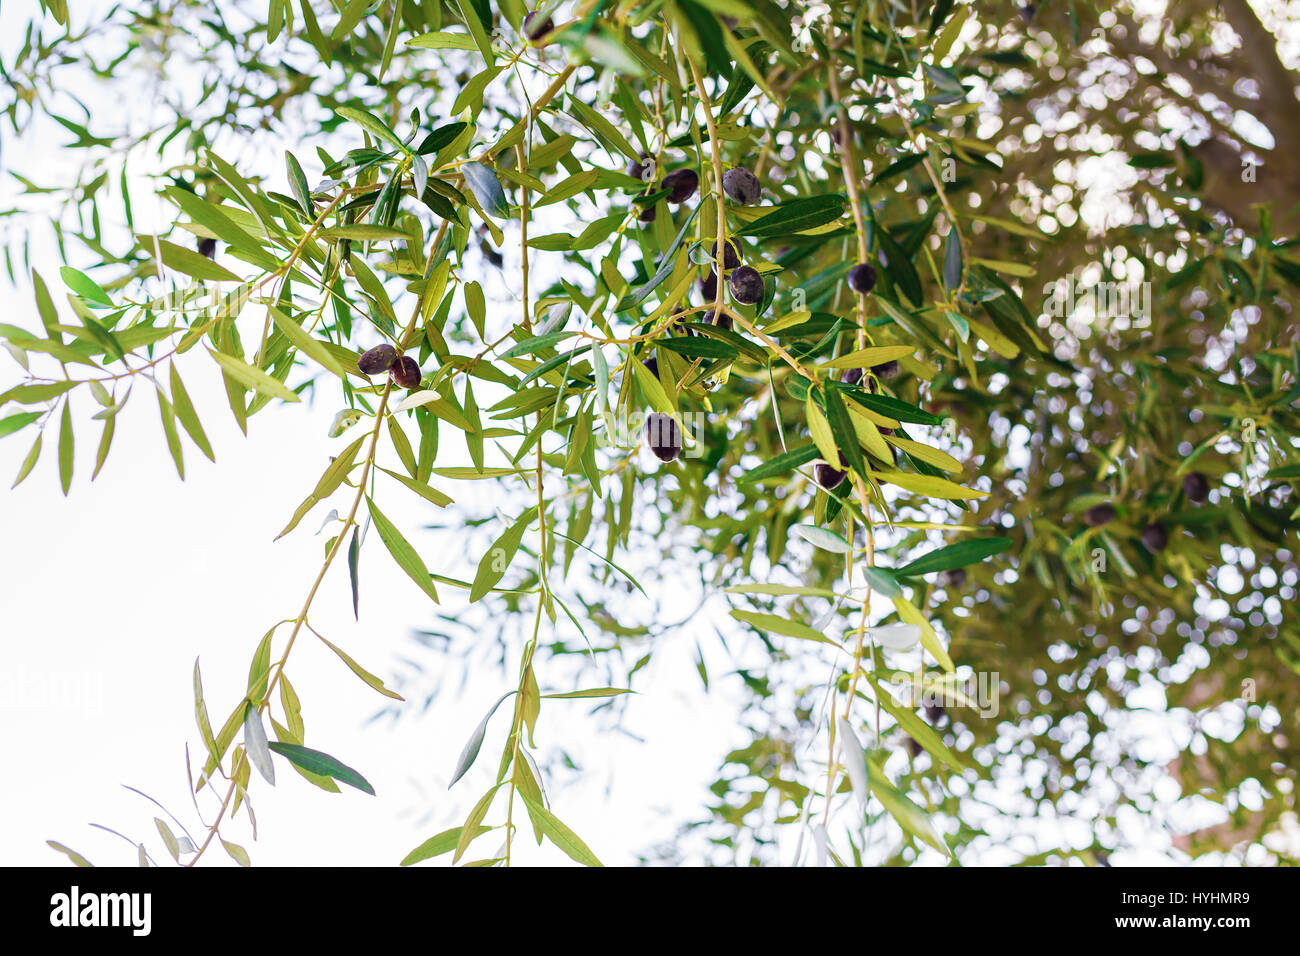 Branch Of Olive Tree With Fruits And Leaves Natural Agricultural